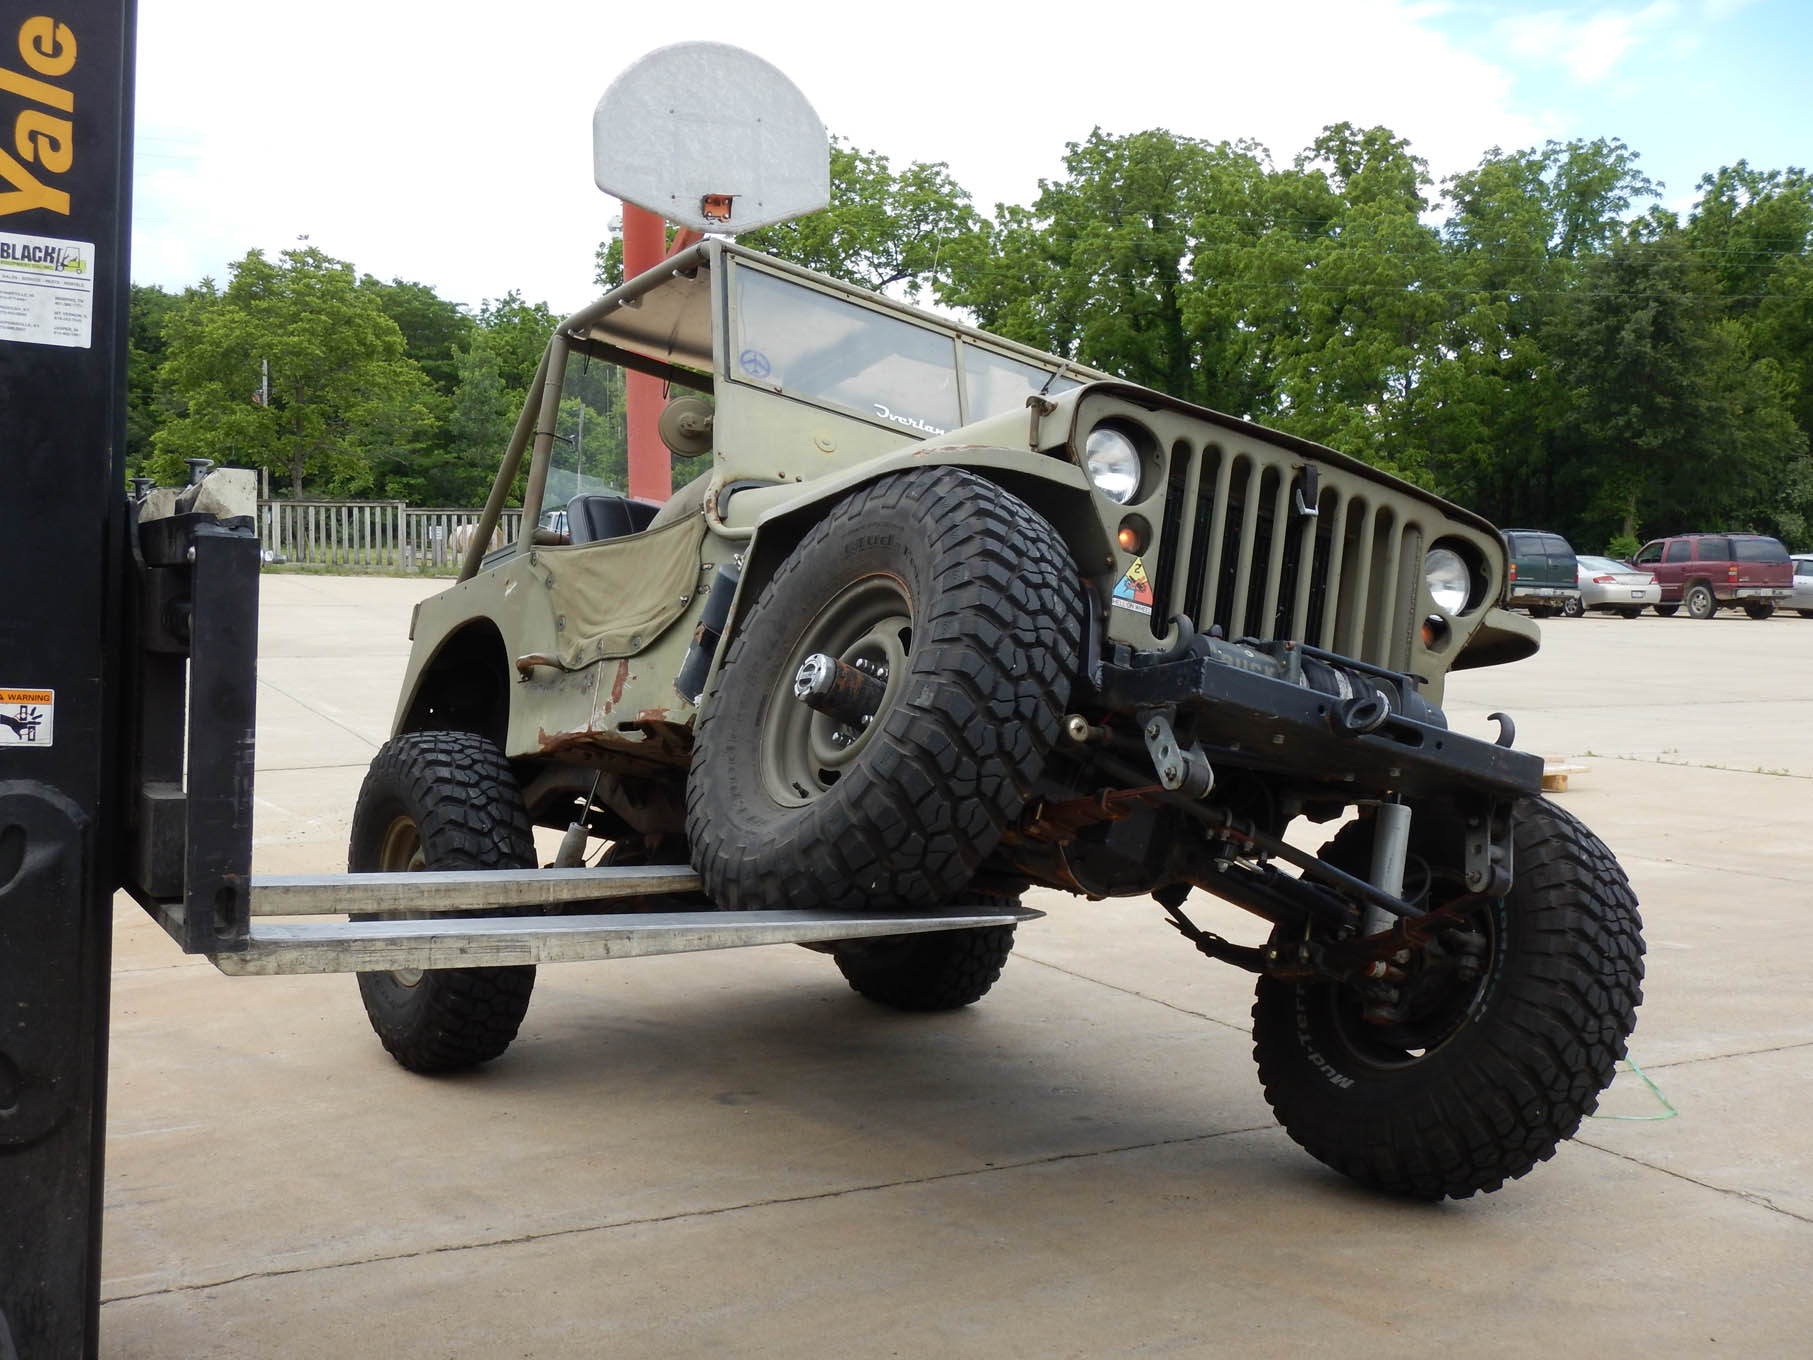 Daniel stopped to see a friend in Illinois, and just for grins, they put the CJ-2A on a forklift and flexed it a bit. The rear shocks were too short, but he already knew that. At a later date, he will need to make taller mounts for the rear shocks.